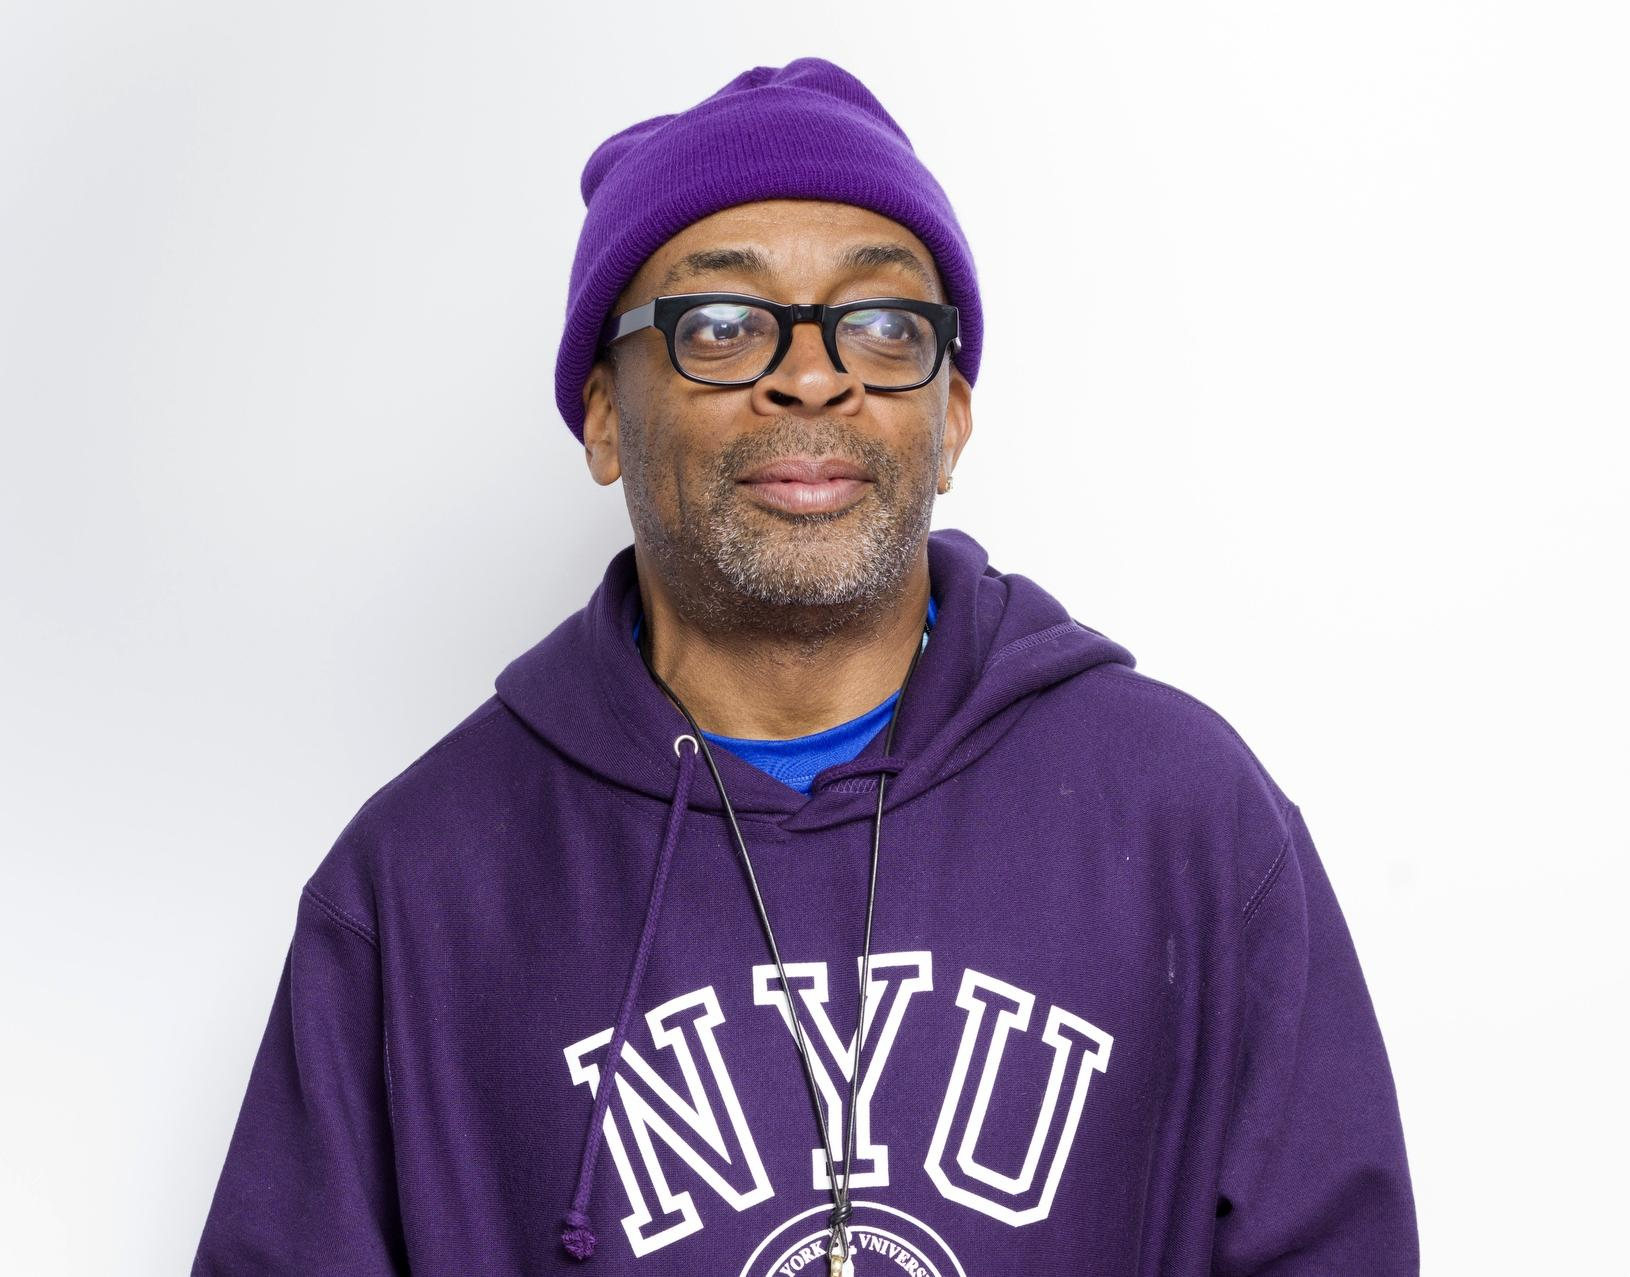 Spike Lee on Oscar speech: 'Gonna try to keep positive'